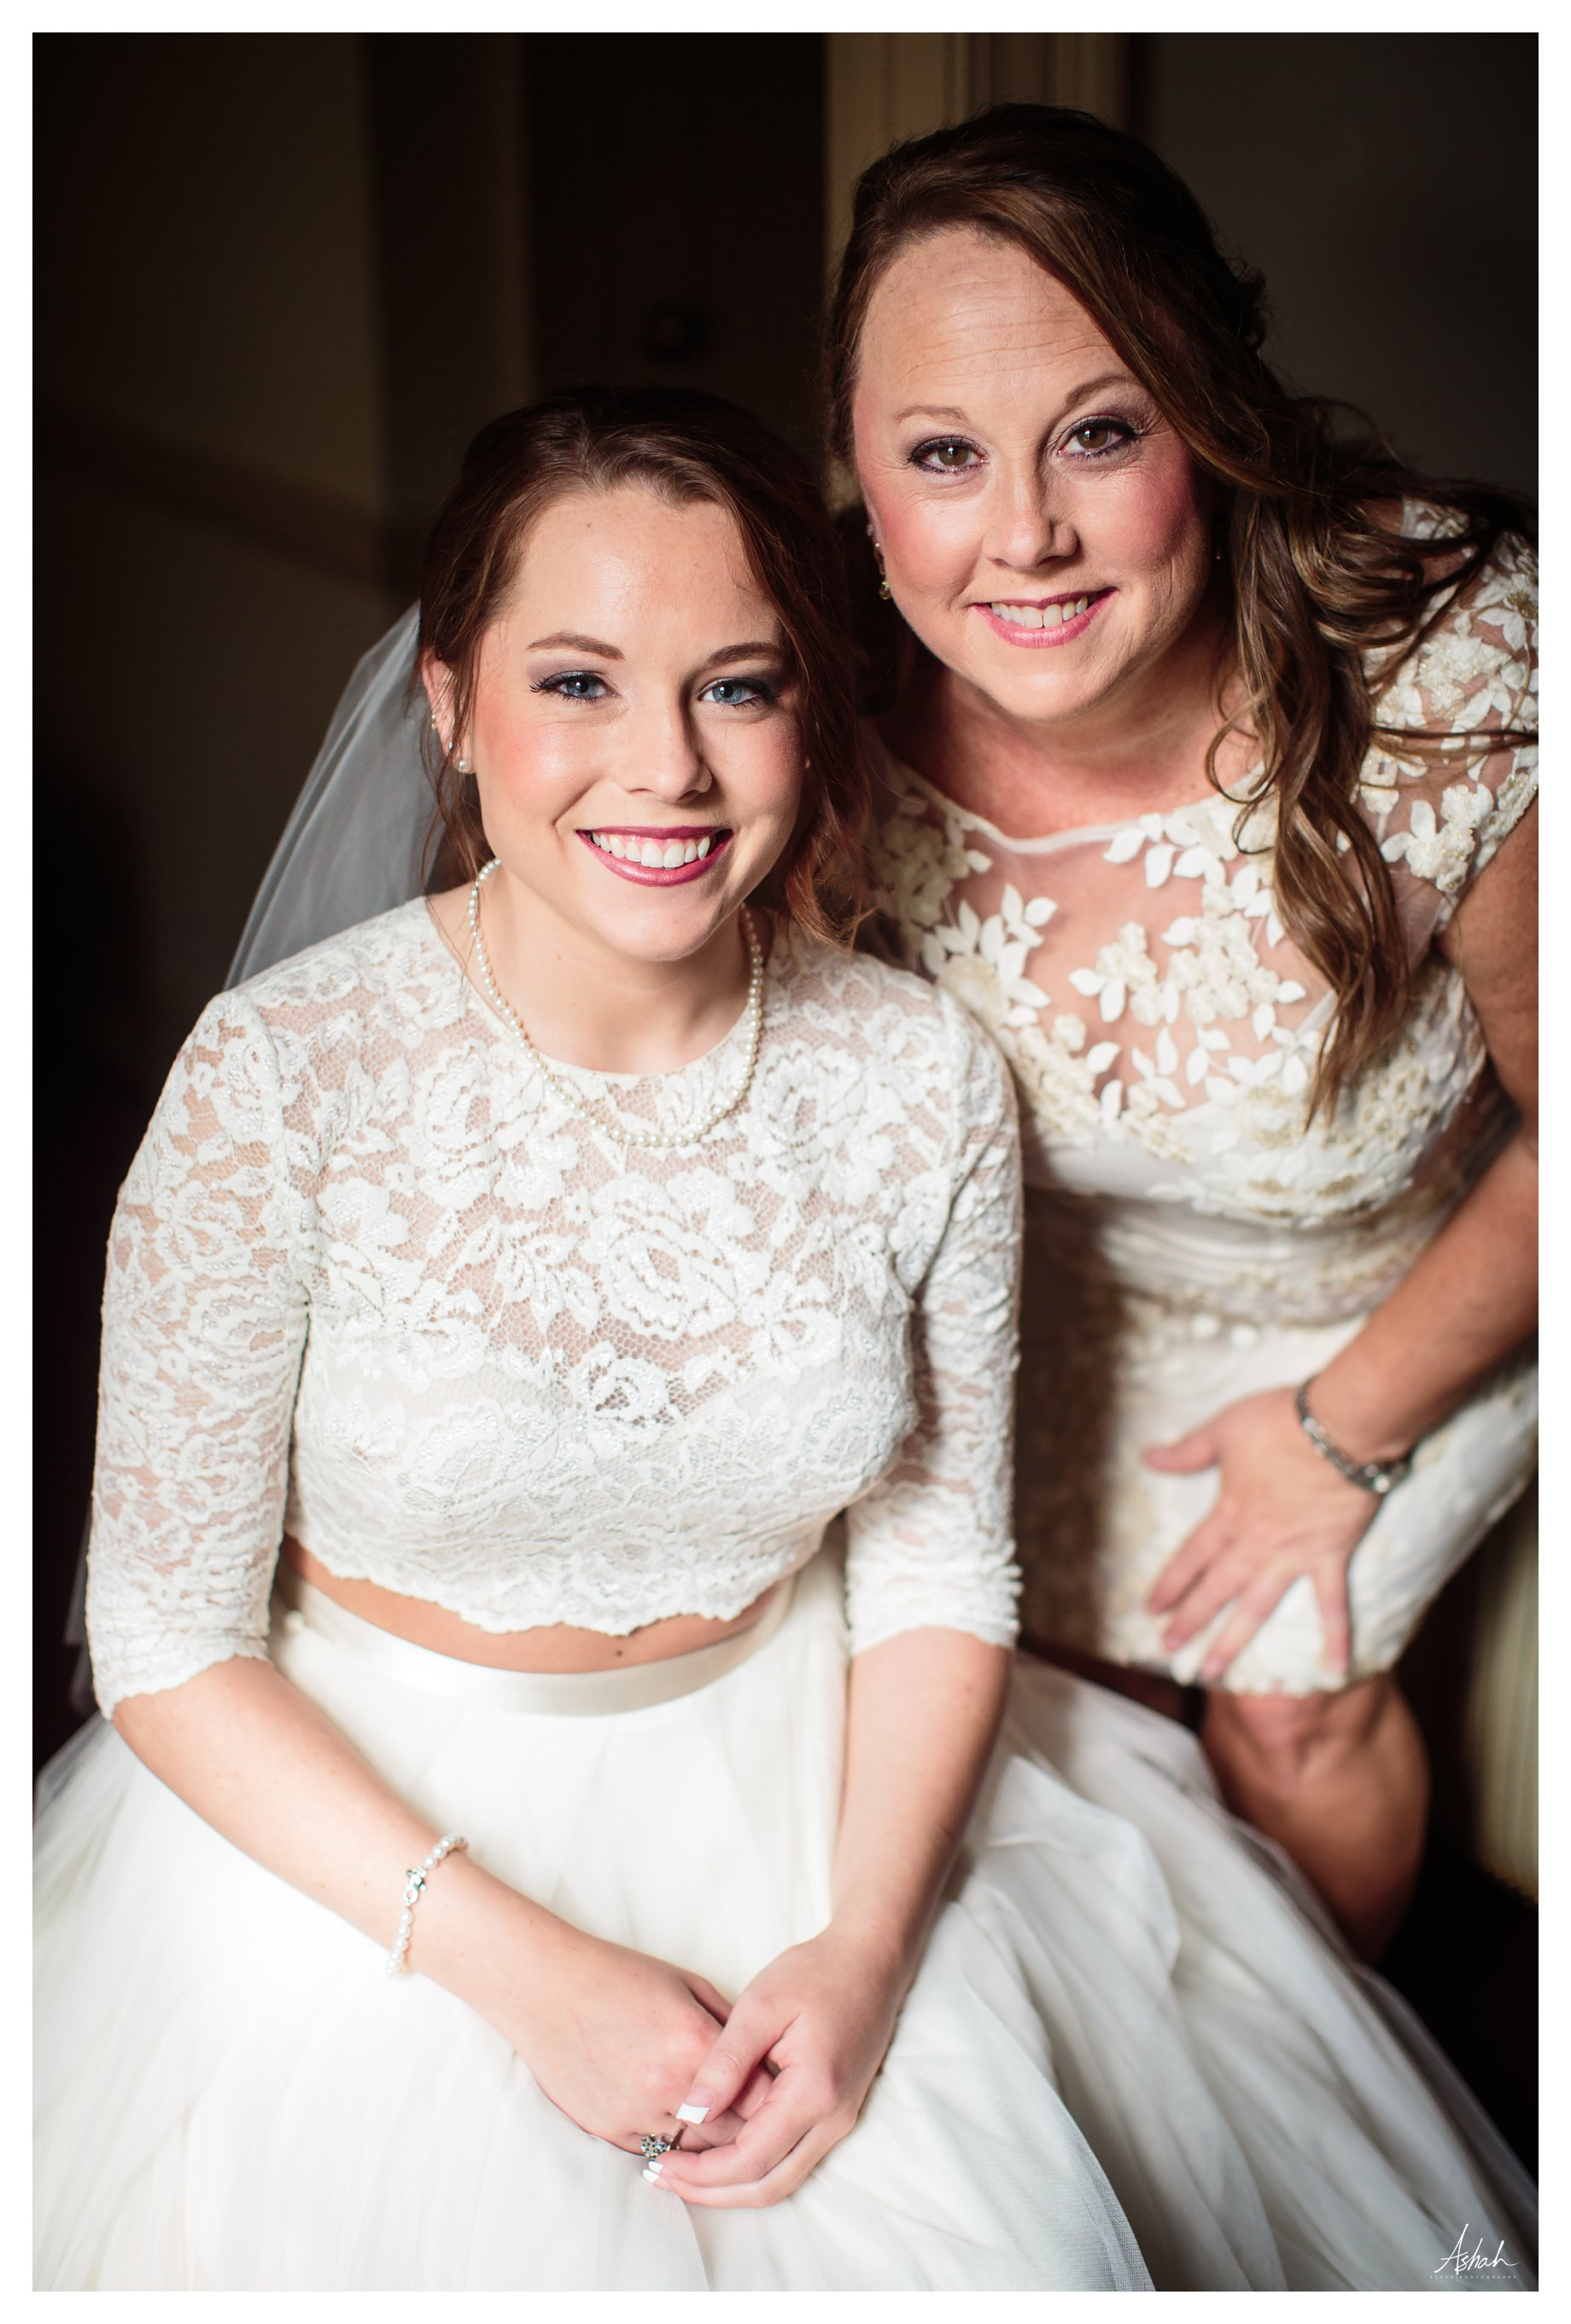 Bride & Mother of the Bride - Dublin Wedding Photographer